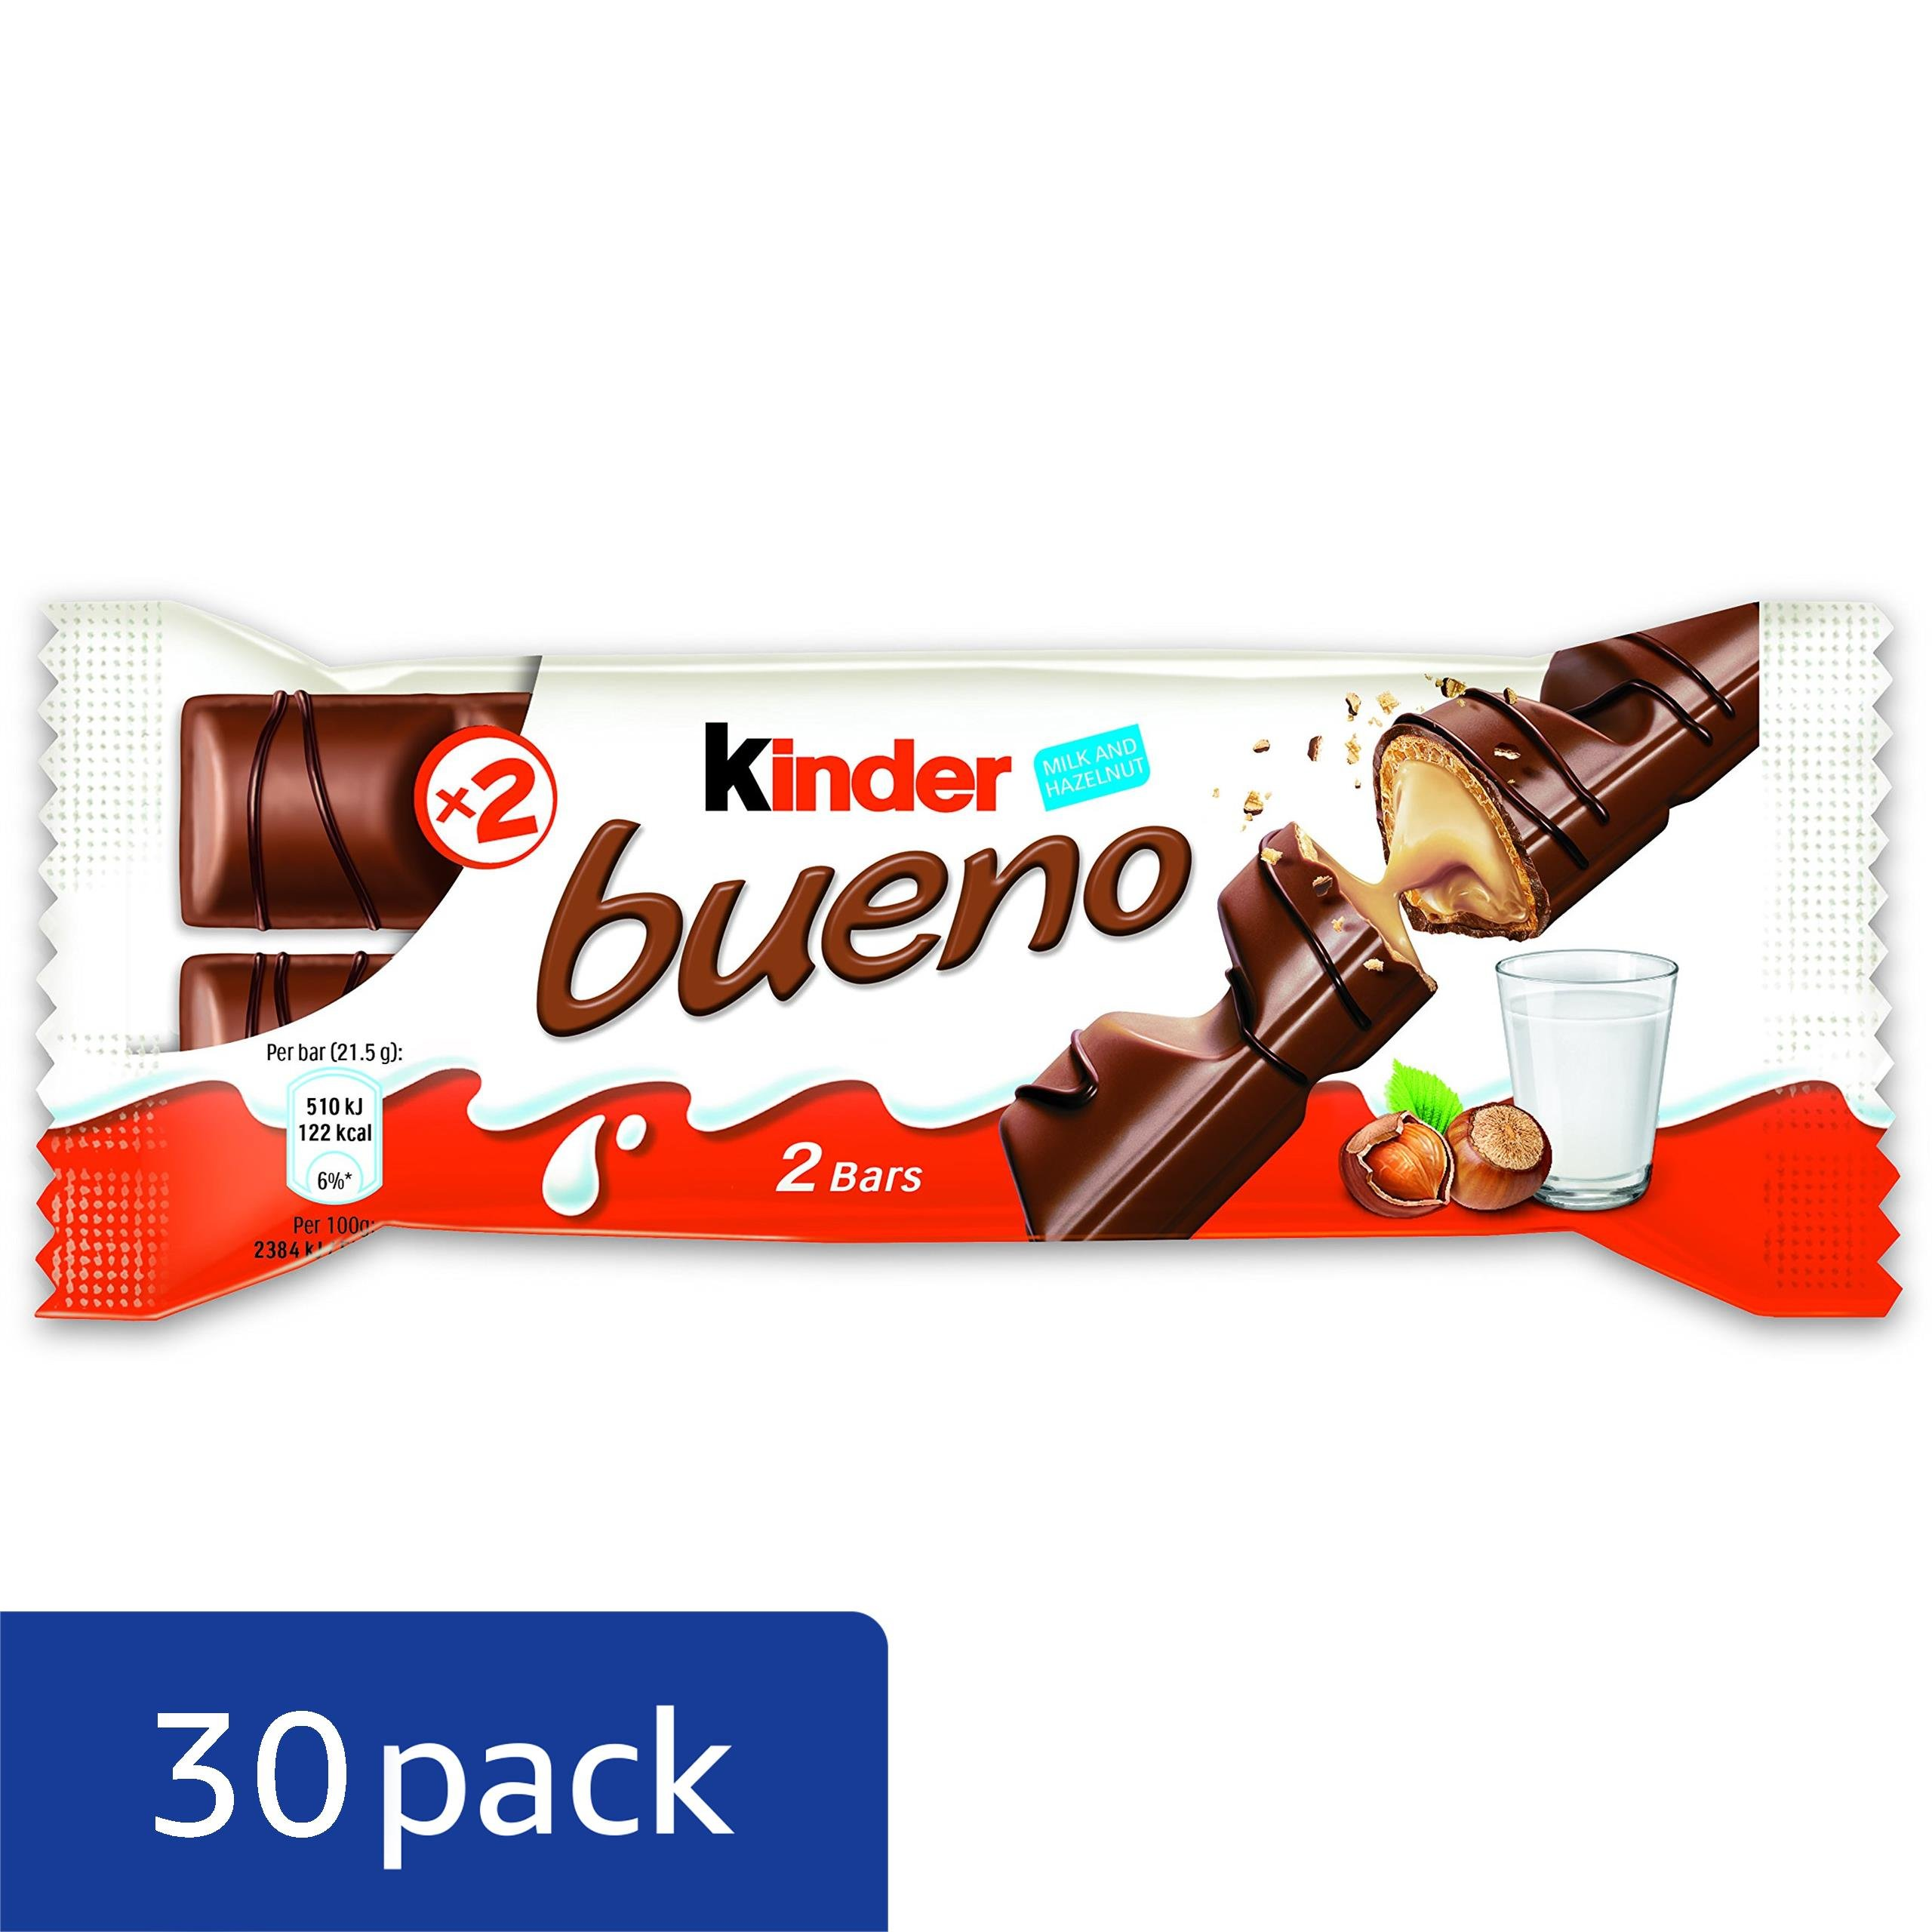 Ferrero Kinder Bueno Wafer Cookies, 1.5 Ounce (43 g) (Pack of 30) by Ferrero (Image #3)